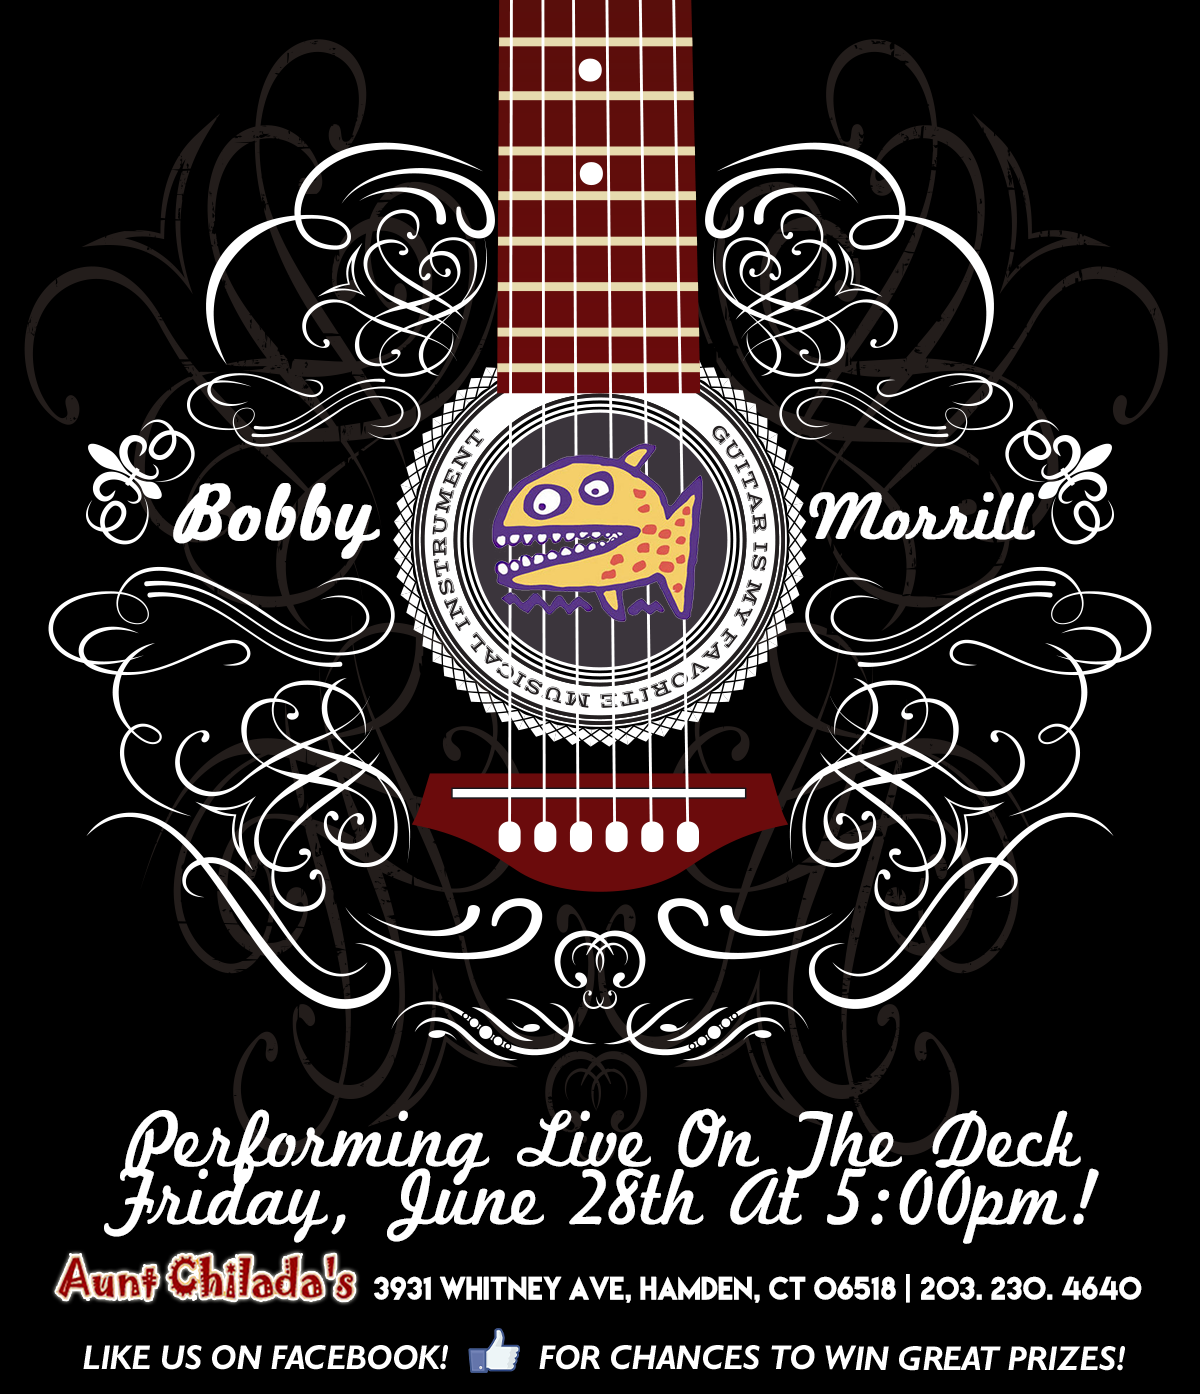 Bobby Morrill performing live on the deck. Friday, june 28th at 5 pm